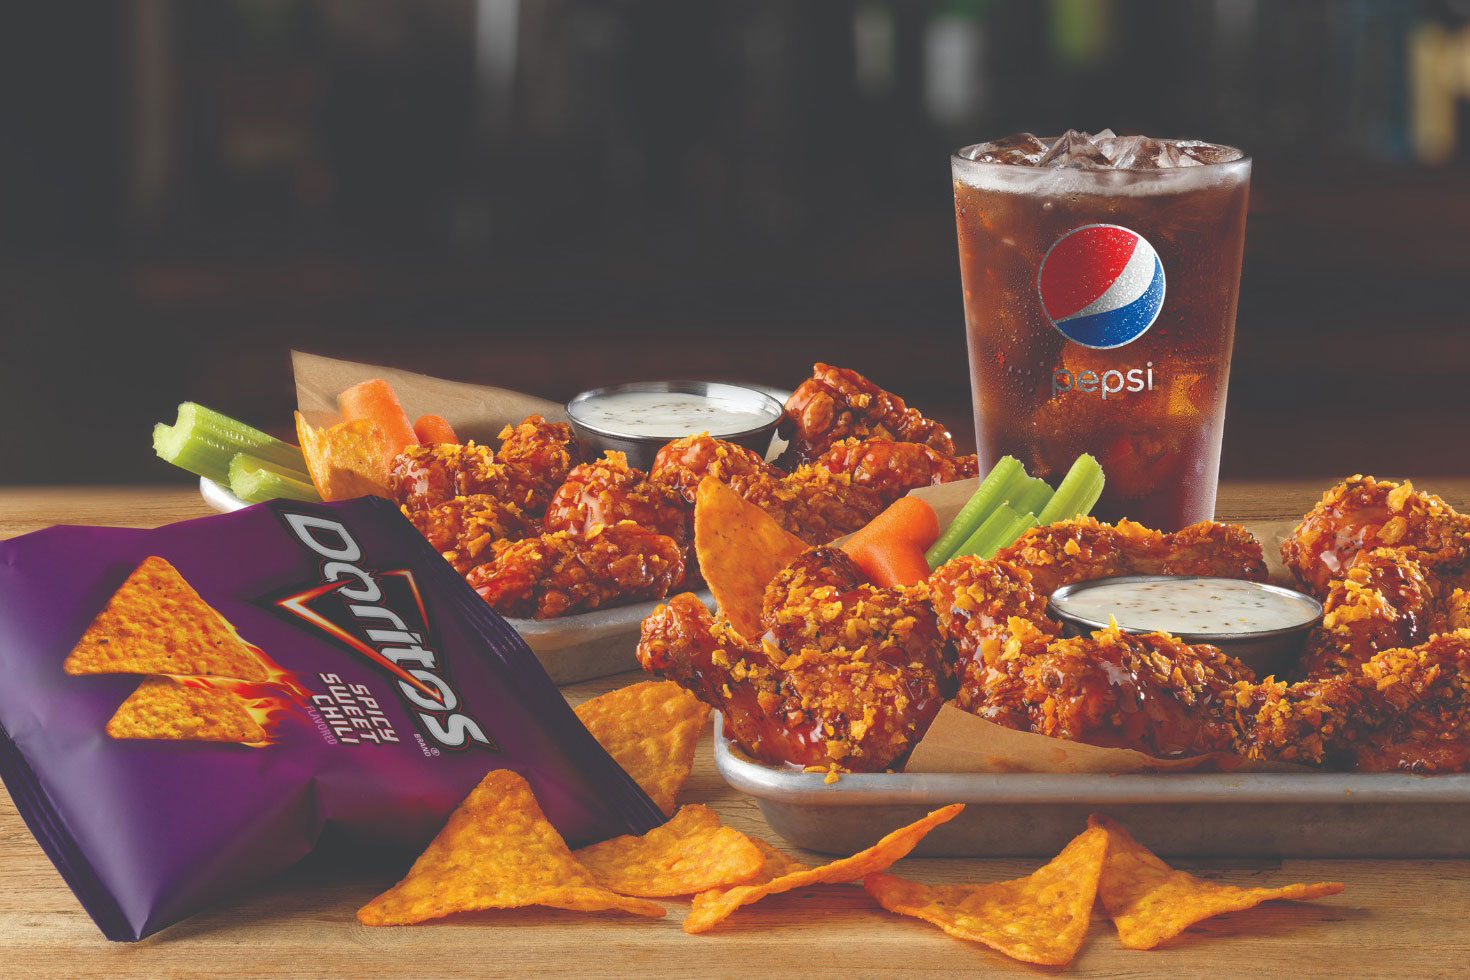 Spicy Sweet Chili Doritos chicken wings